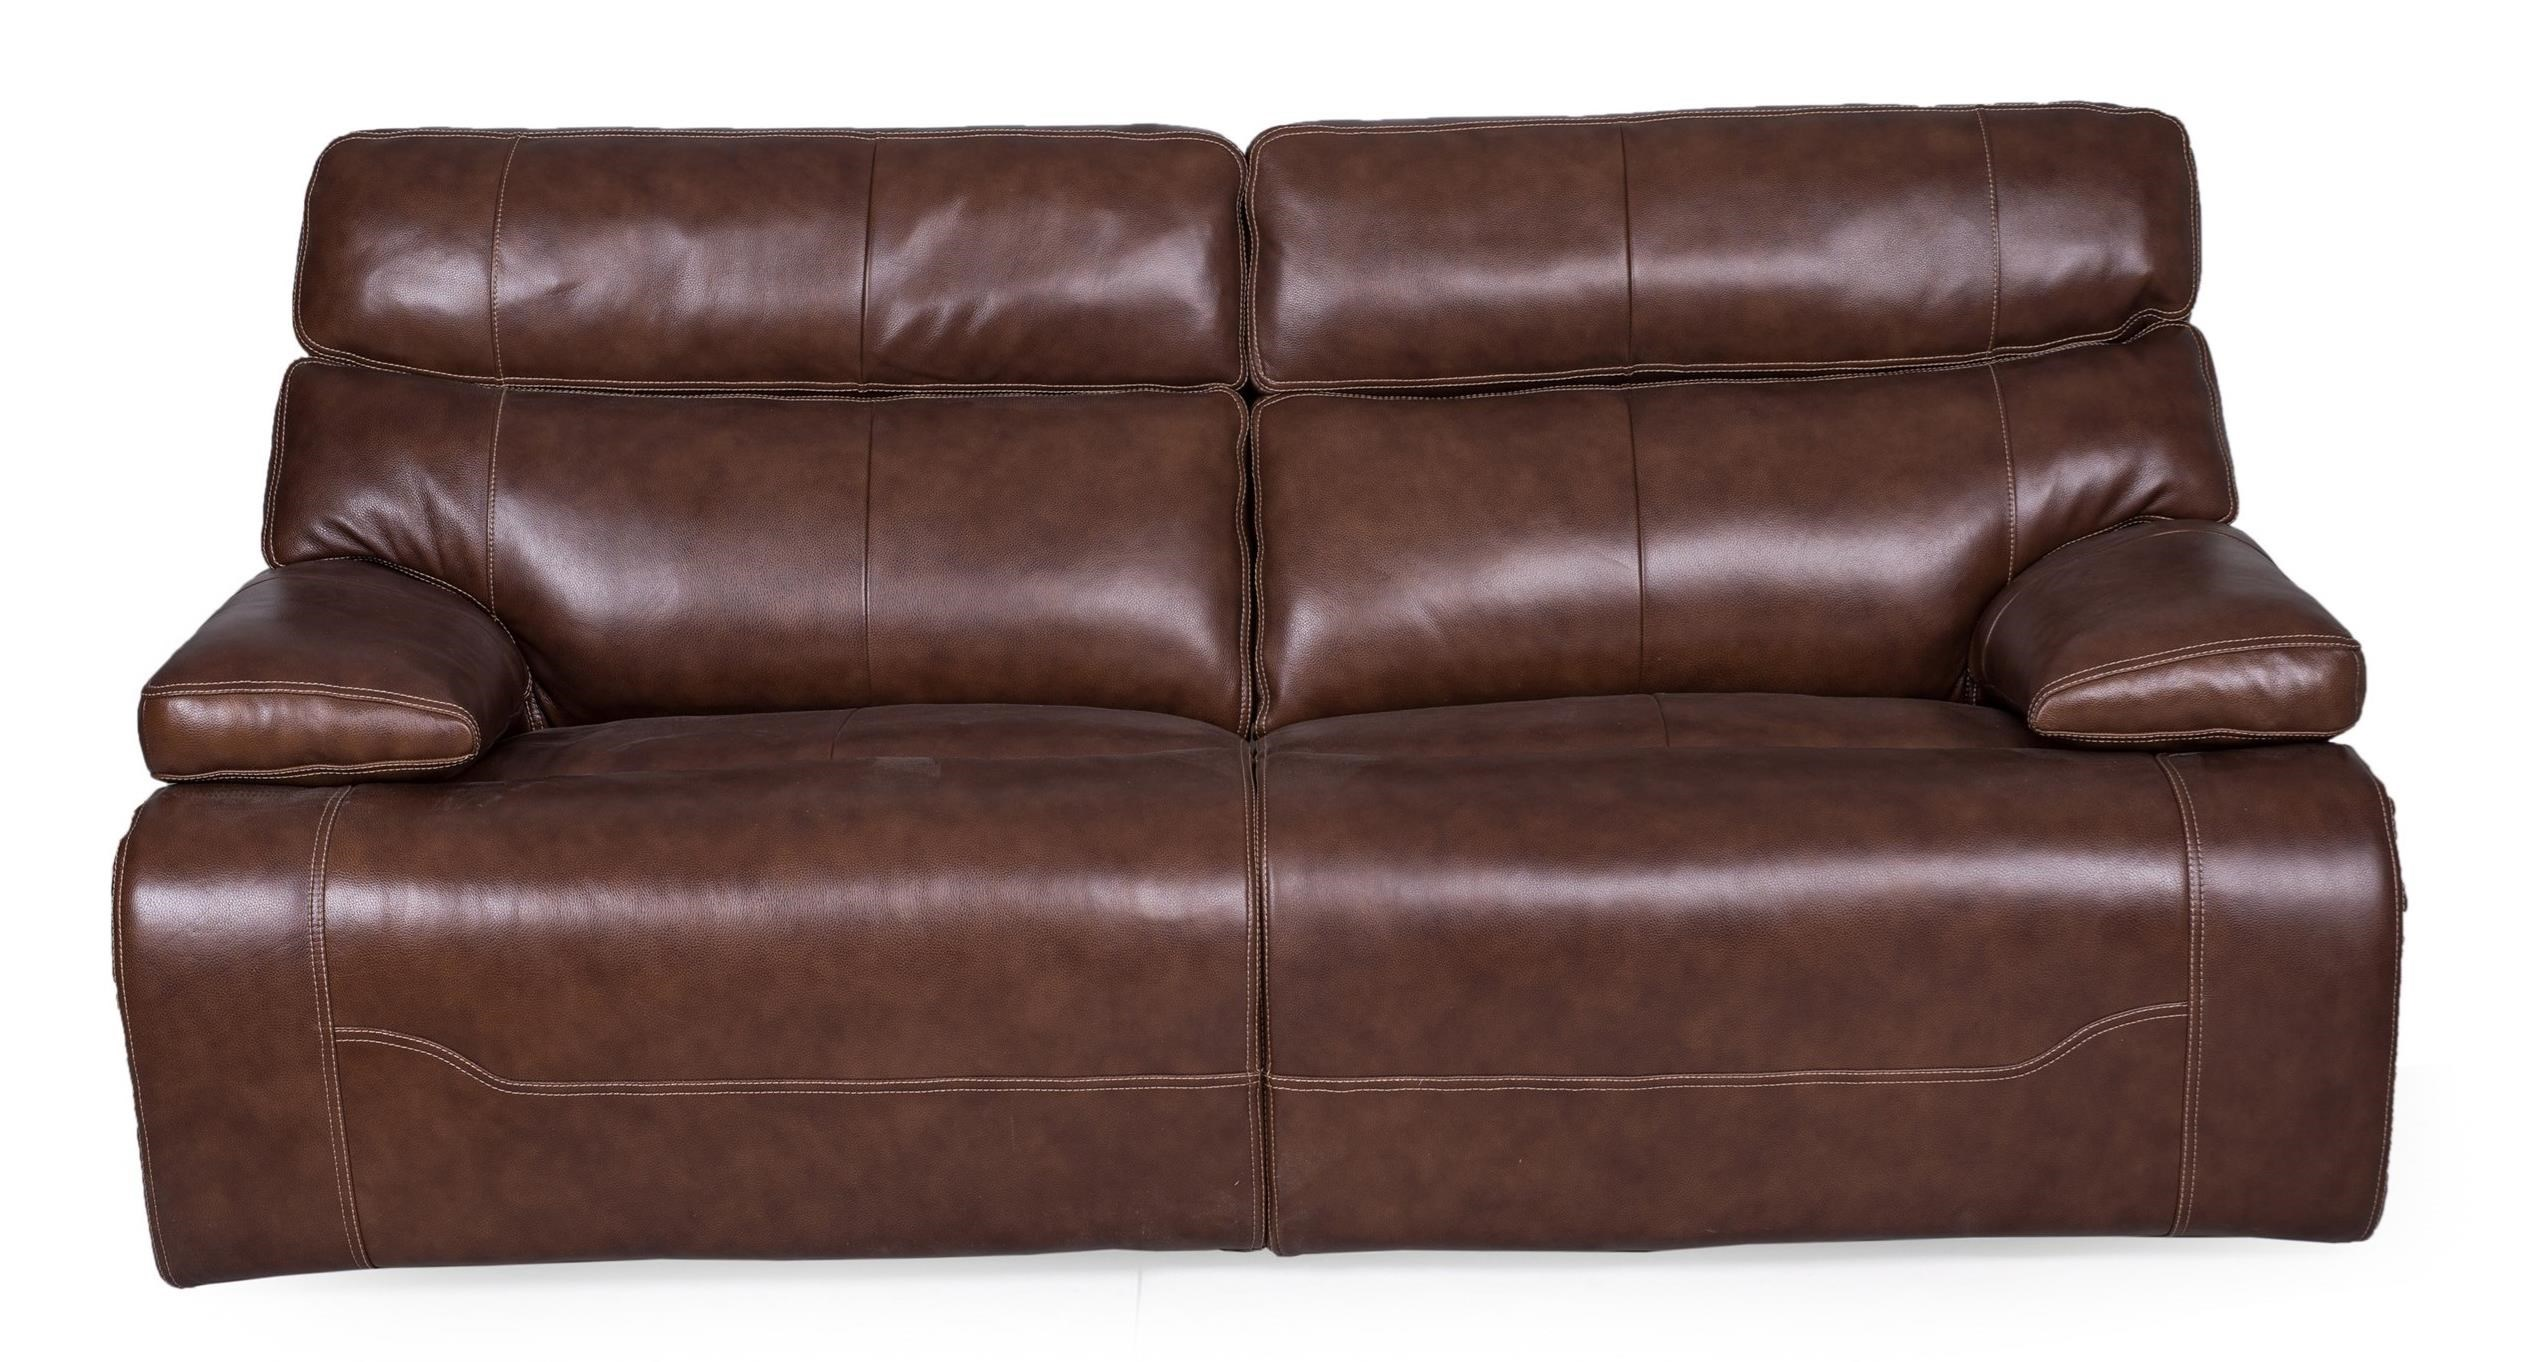 2 Seat Power Reclining Sofa with Power Head/Lumbar and USB Ports